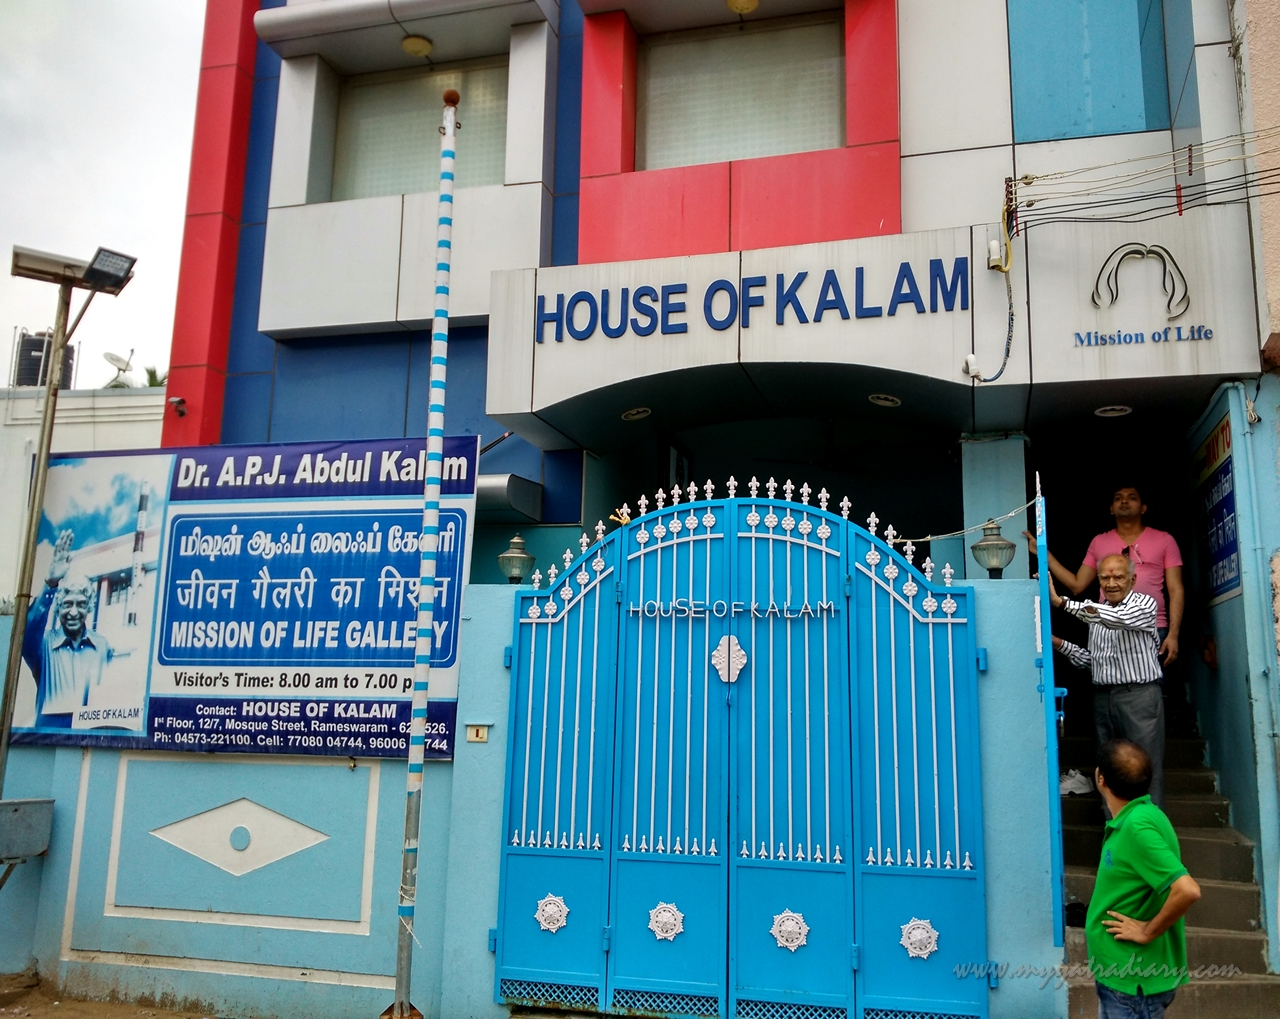 House of Kalam Mission of Life Gallery, Rameshwaram